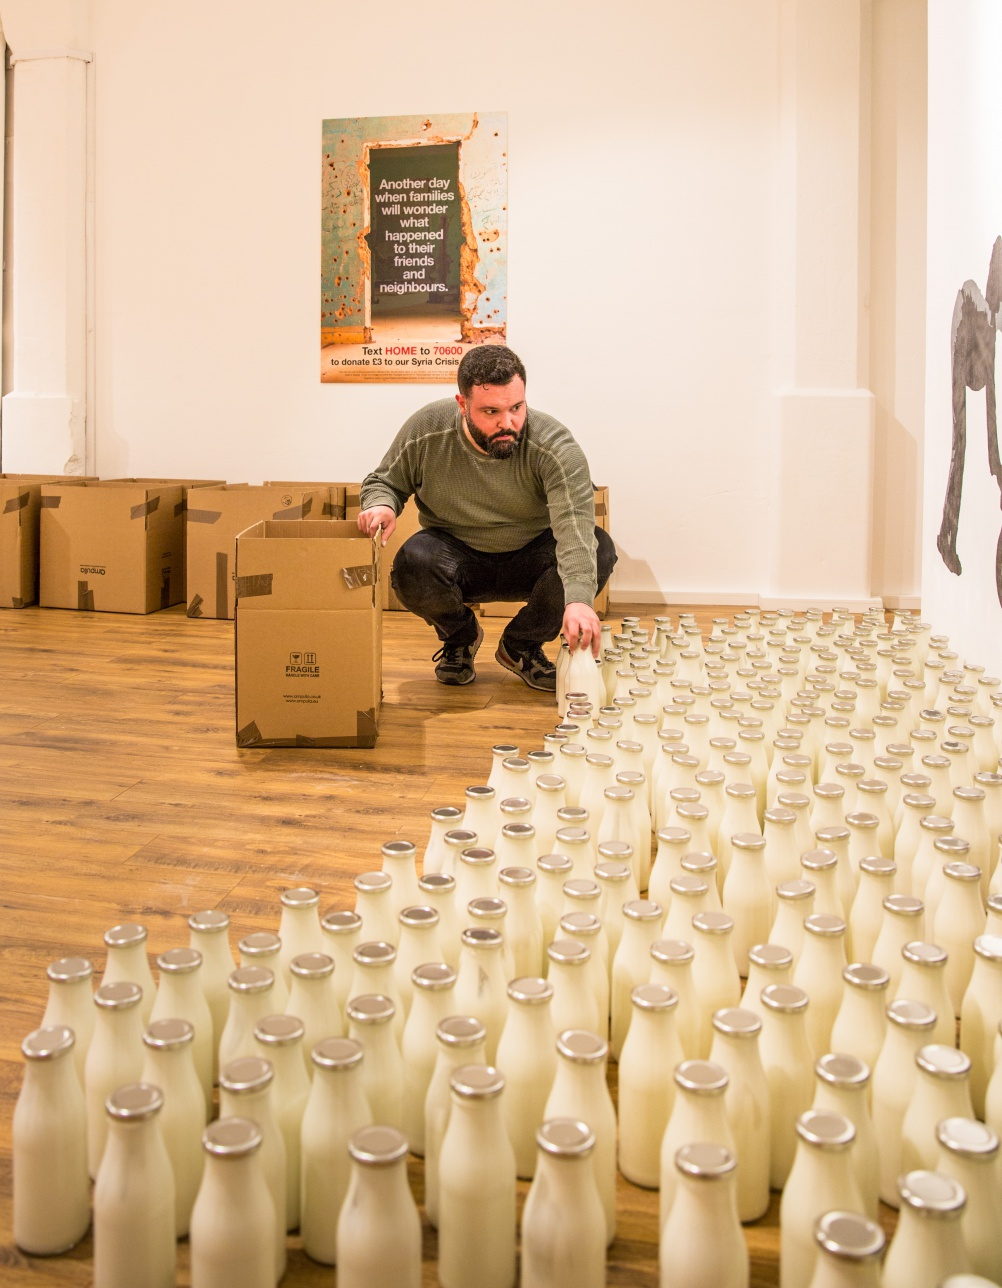 Ibrahim Fakhri, 1461 days and counting installation for British Red Cross, London Britain - 15 Mar 2015